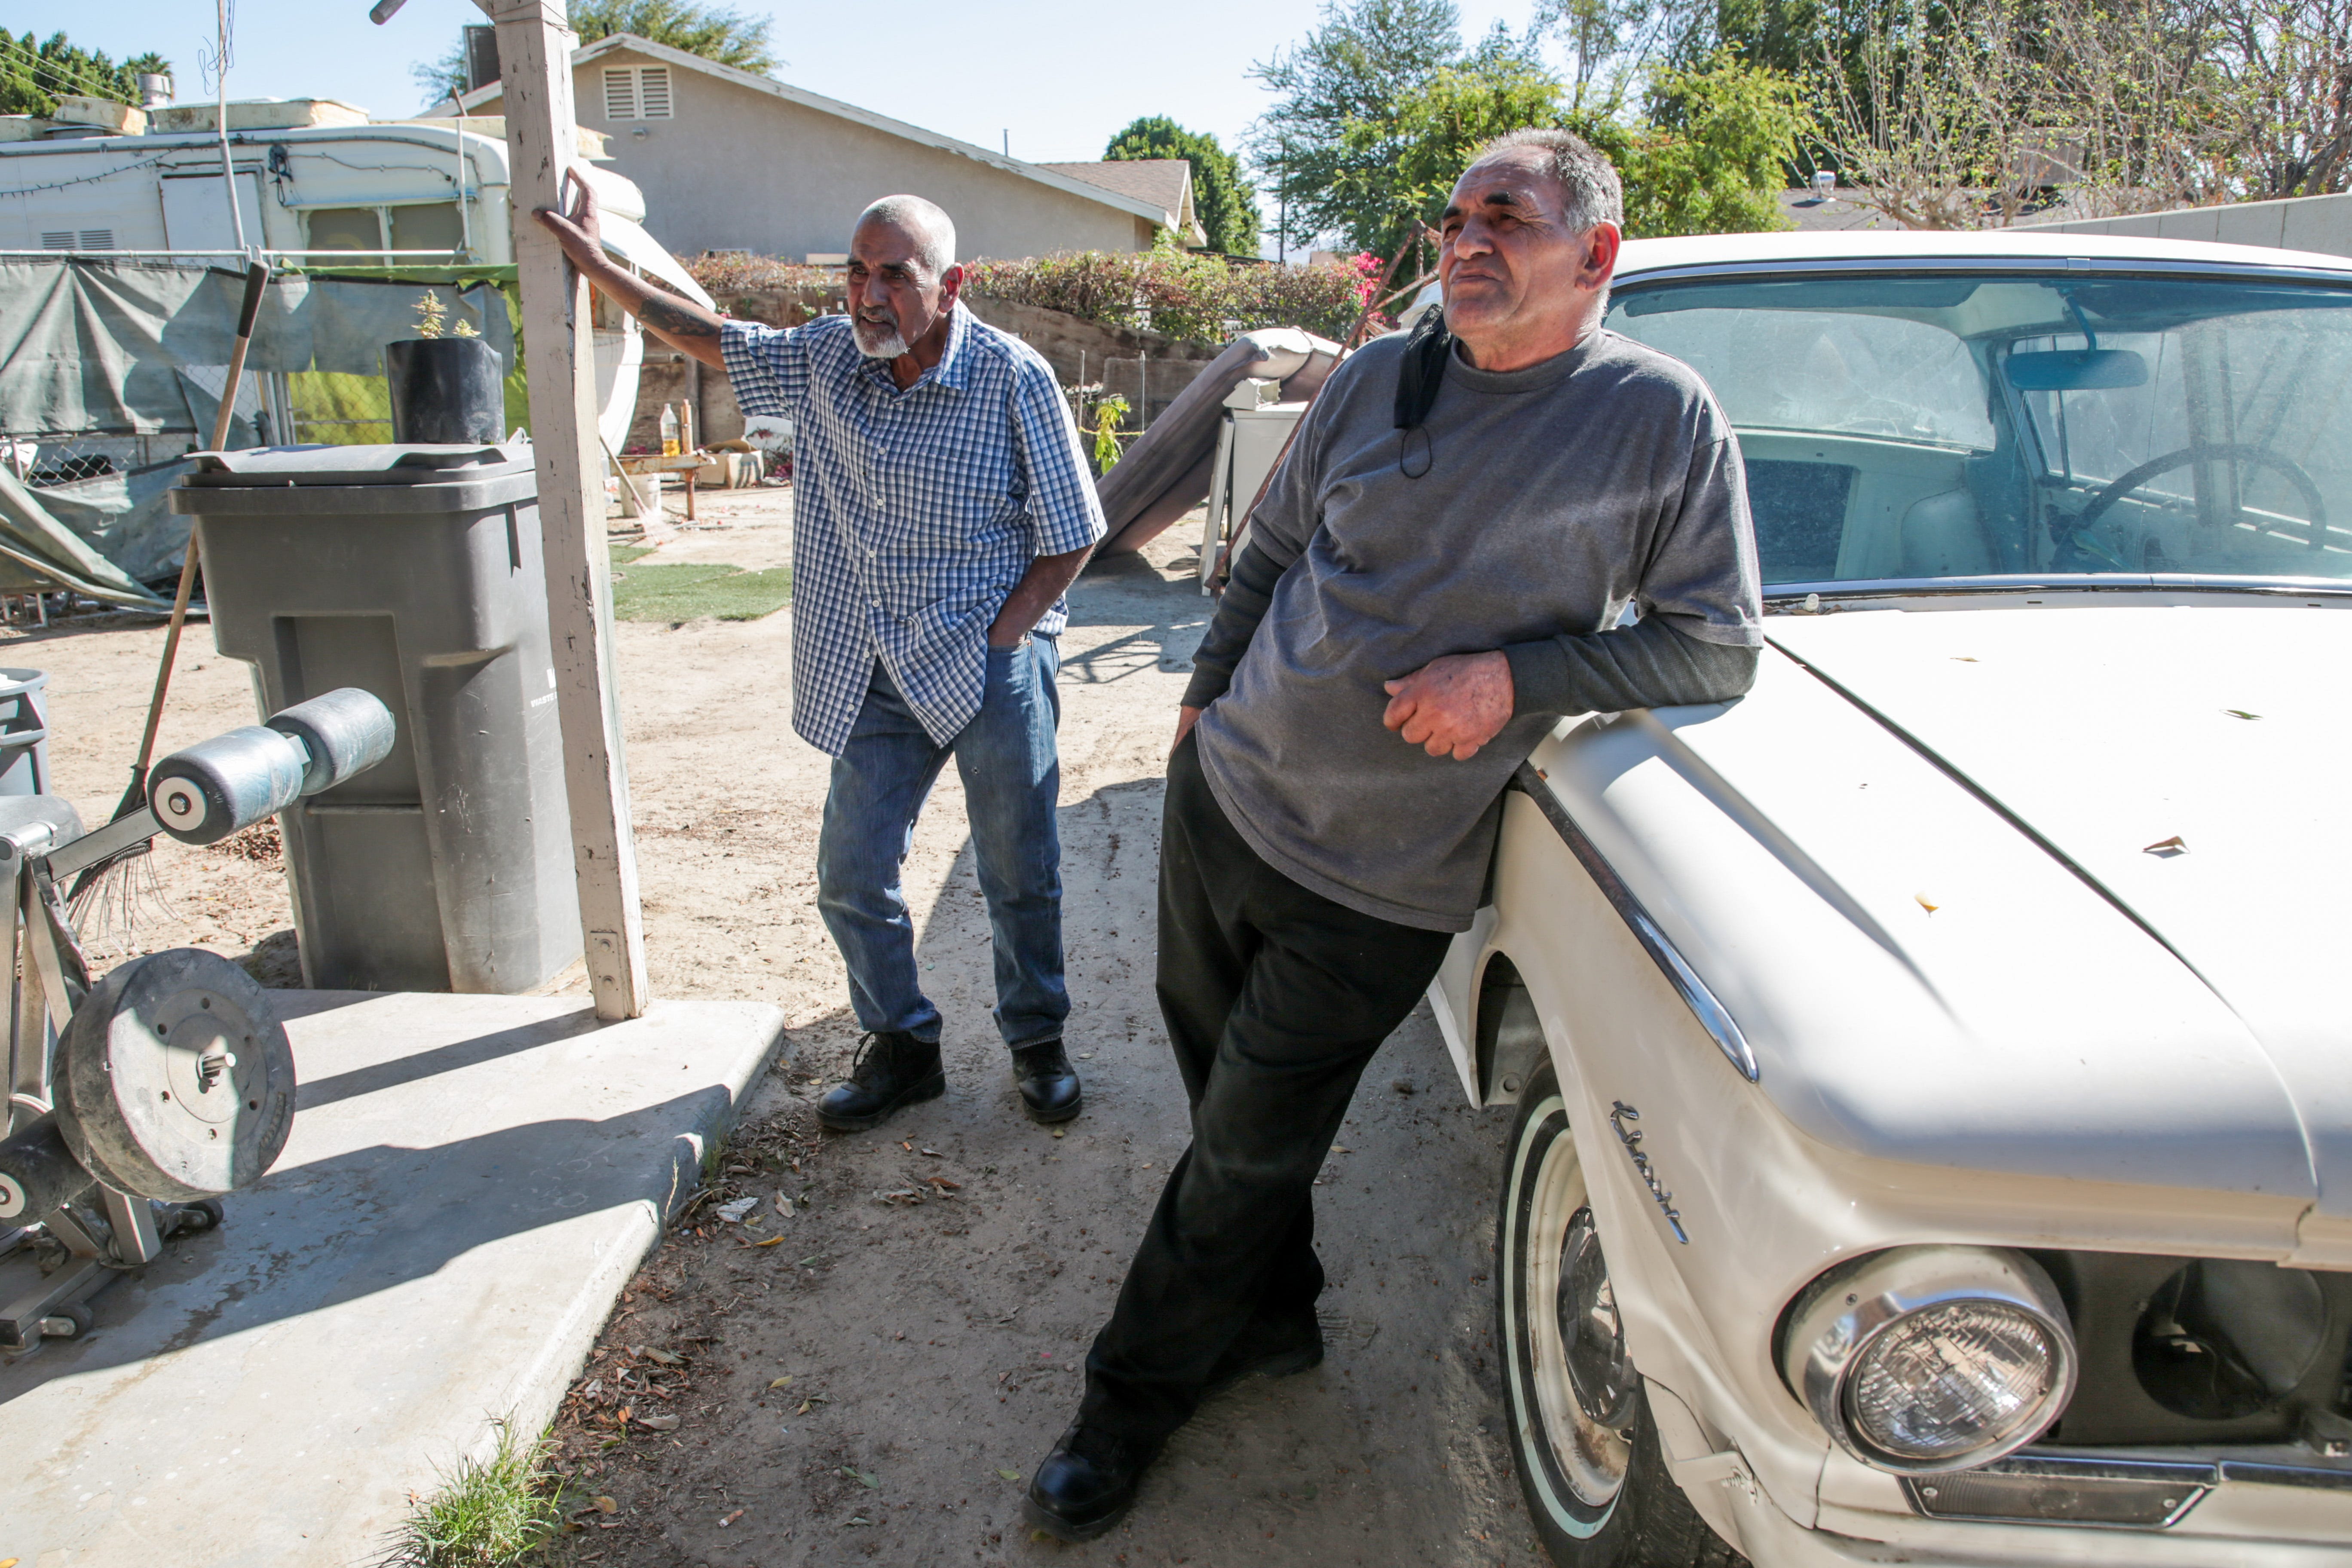 Luis Carlos Morin Sr., left, and brother Hector Morin, right, stand in their backyard in Coachella Feb. 25, 2021. Former Riverside County Sheriff's Deputy Oscar Rodriguez has been charged in the 2014 fatal shooting of Luis Morin Jr., Carlos' son.